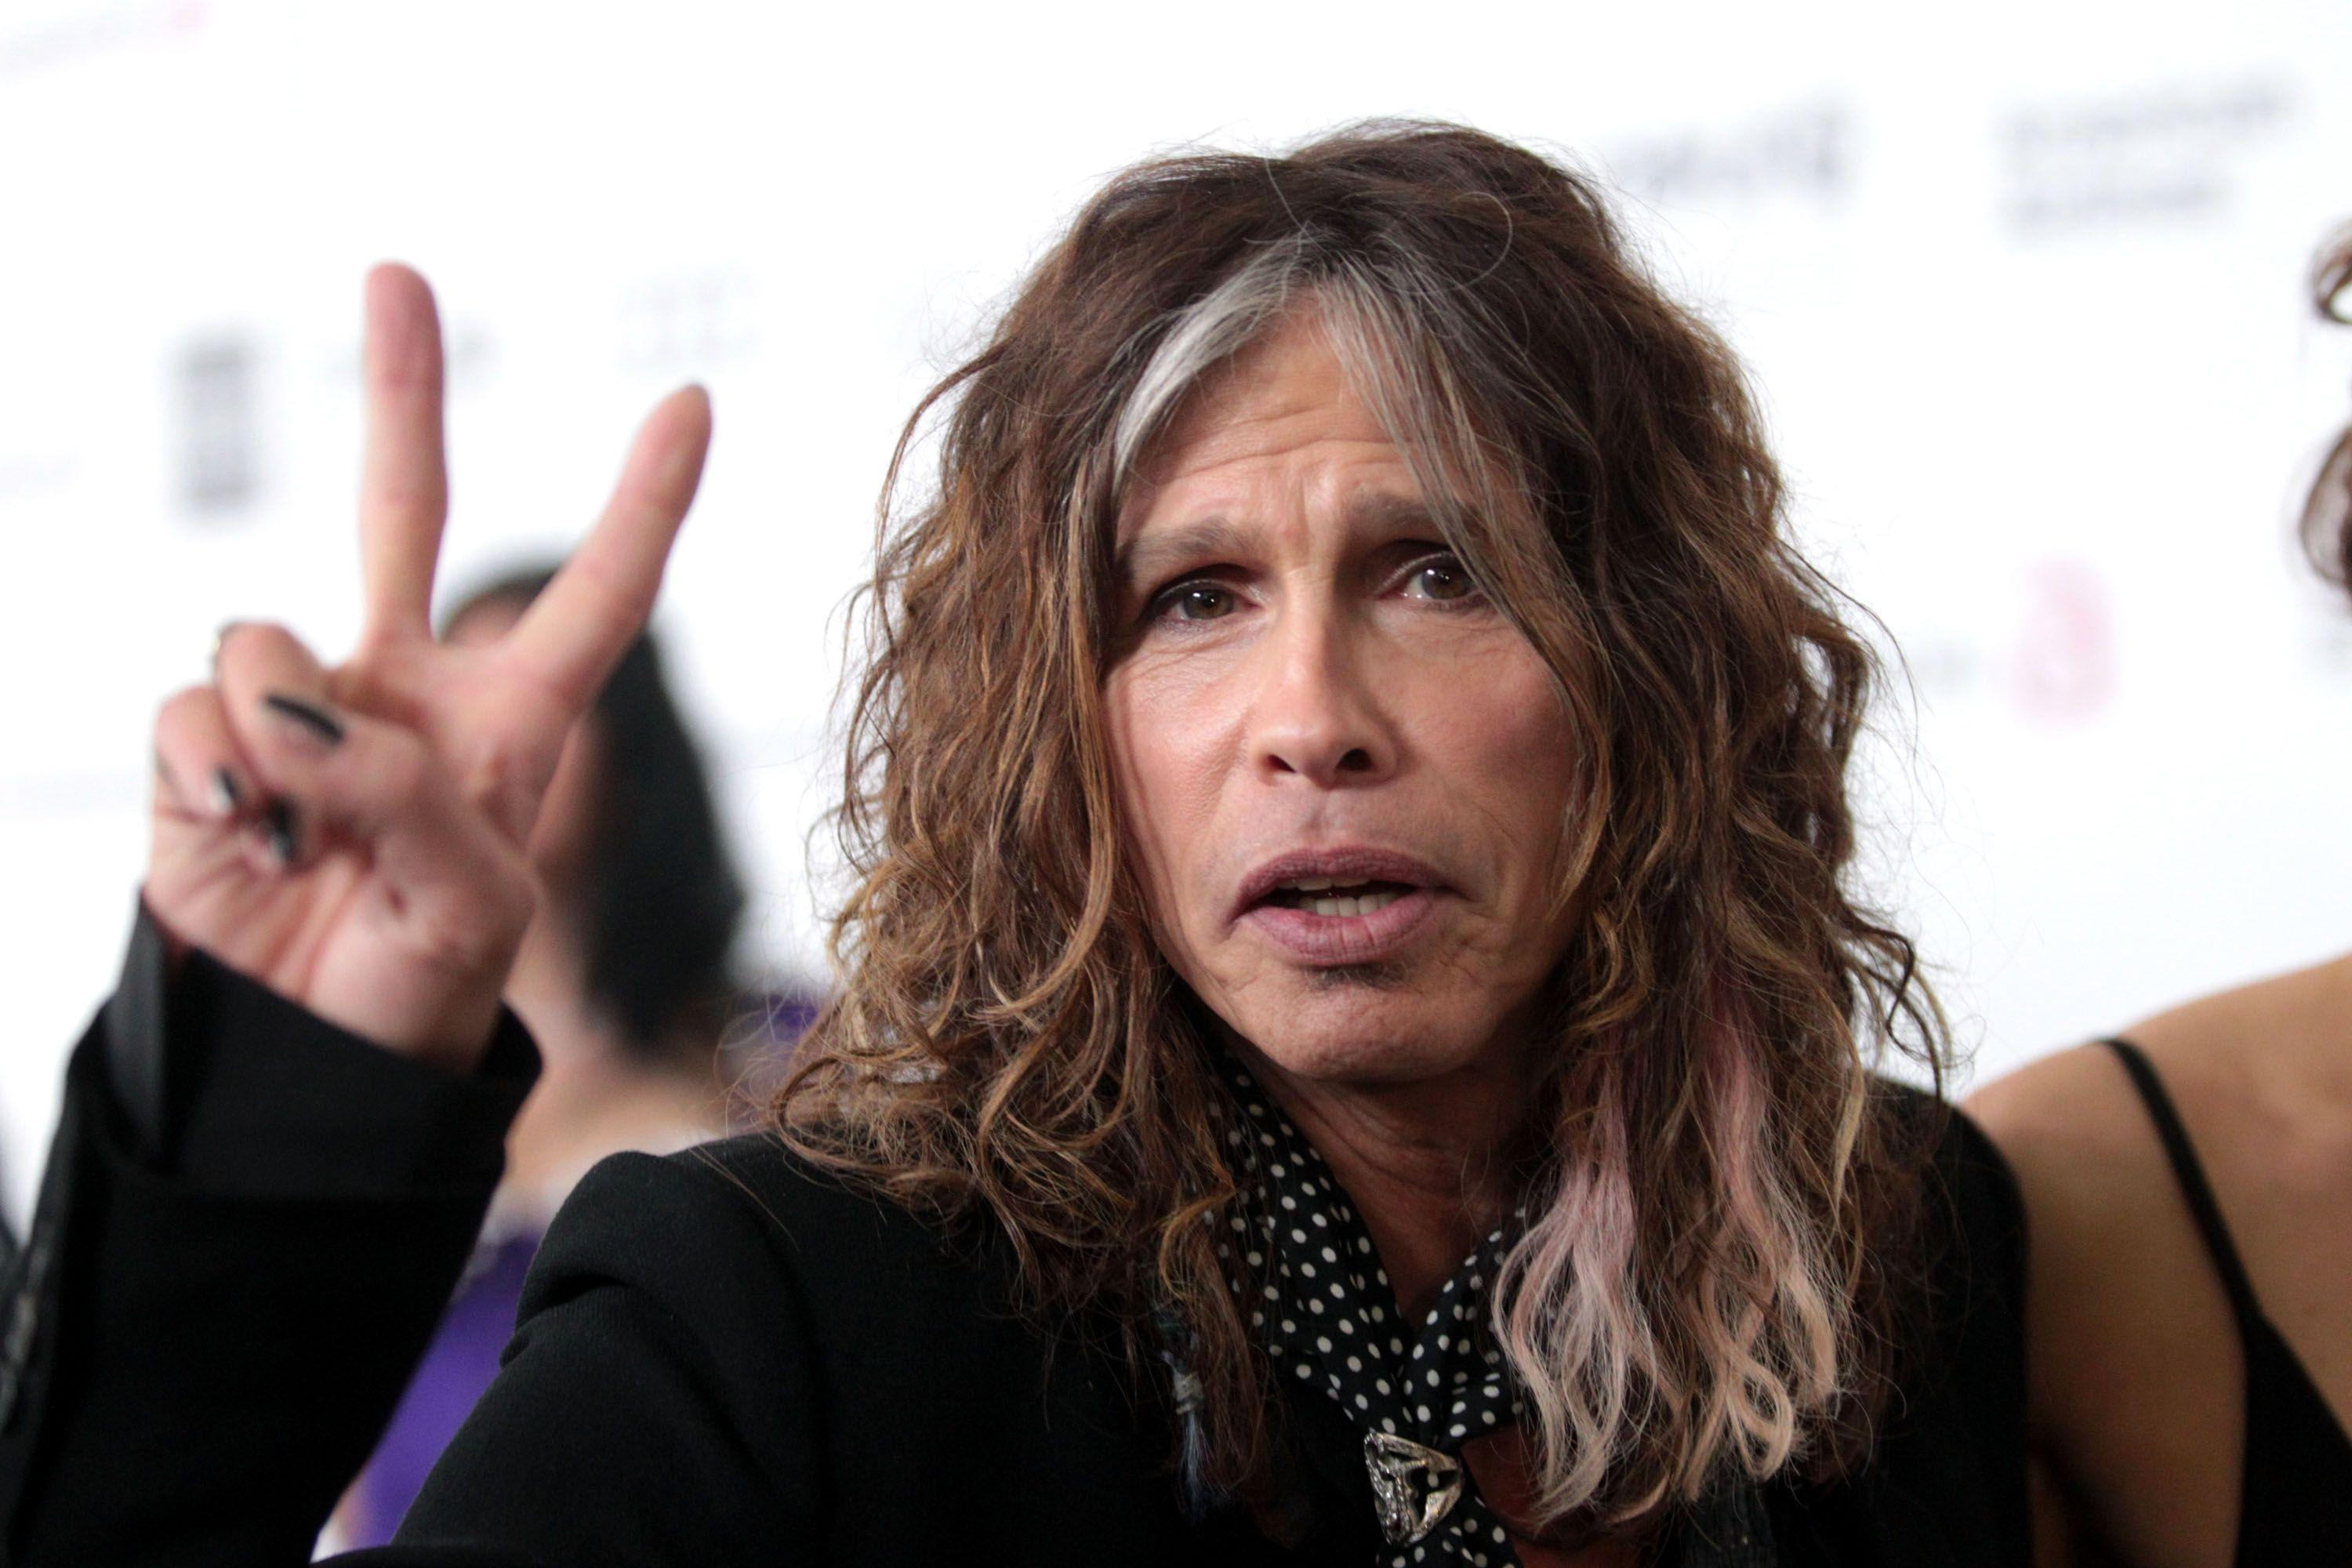 High Quality Steven Tyler Wallpapers